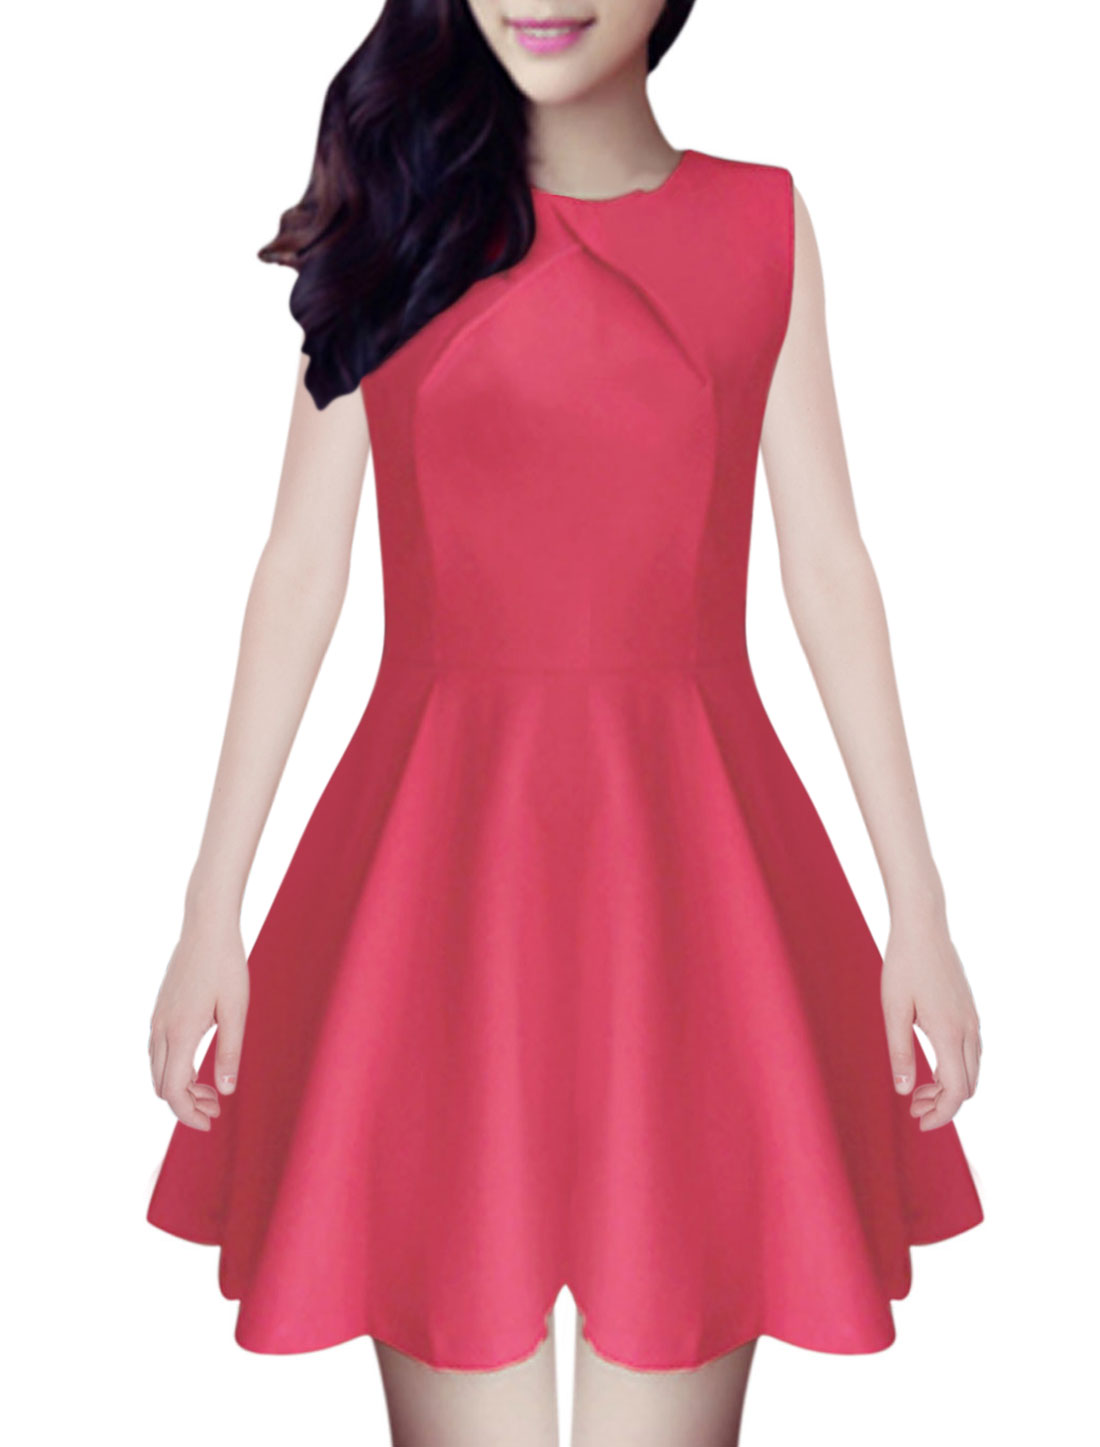 Lady Crew Neck Sleeveless Concealed Zipper Back Skater Dress Red XS